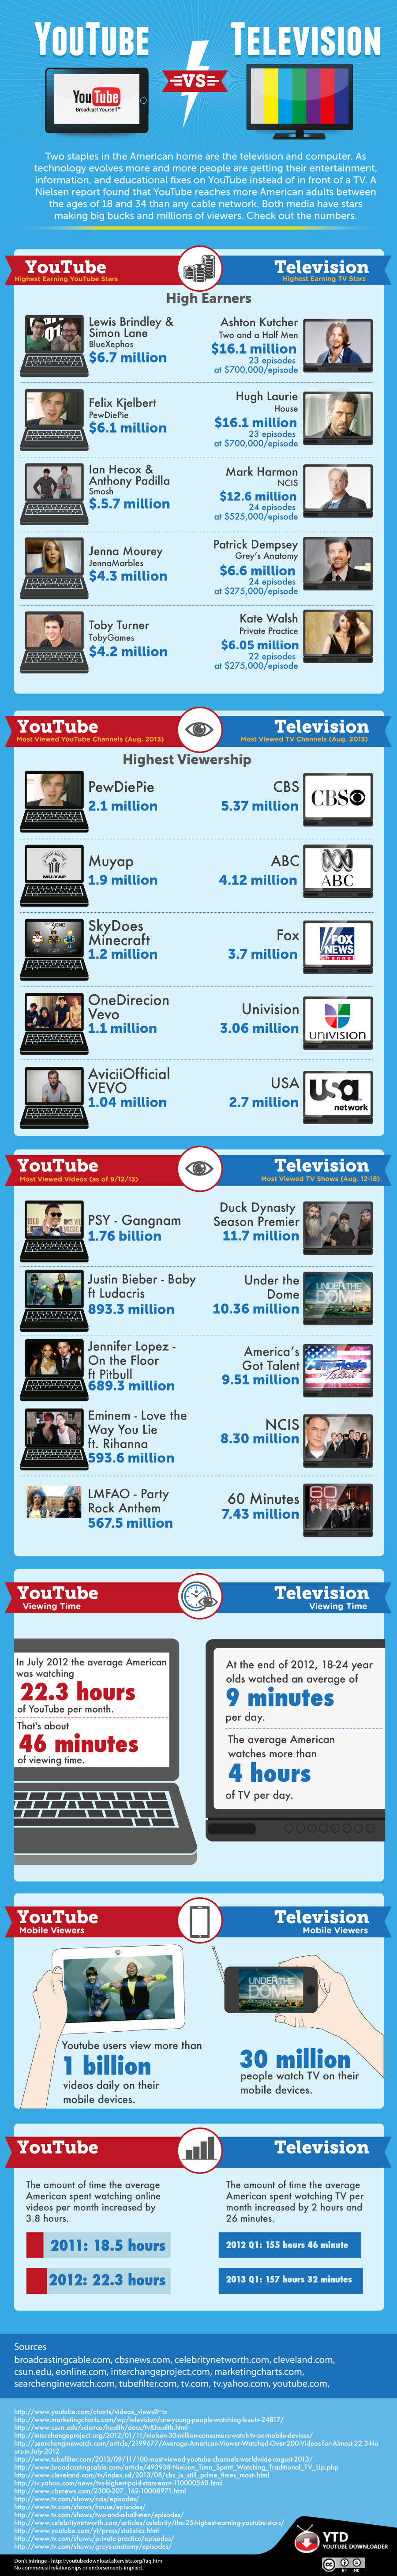 Youtube vs. Television Infographic